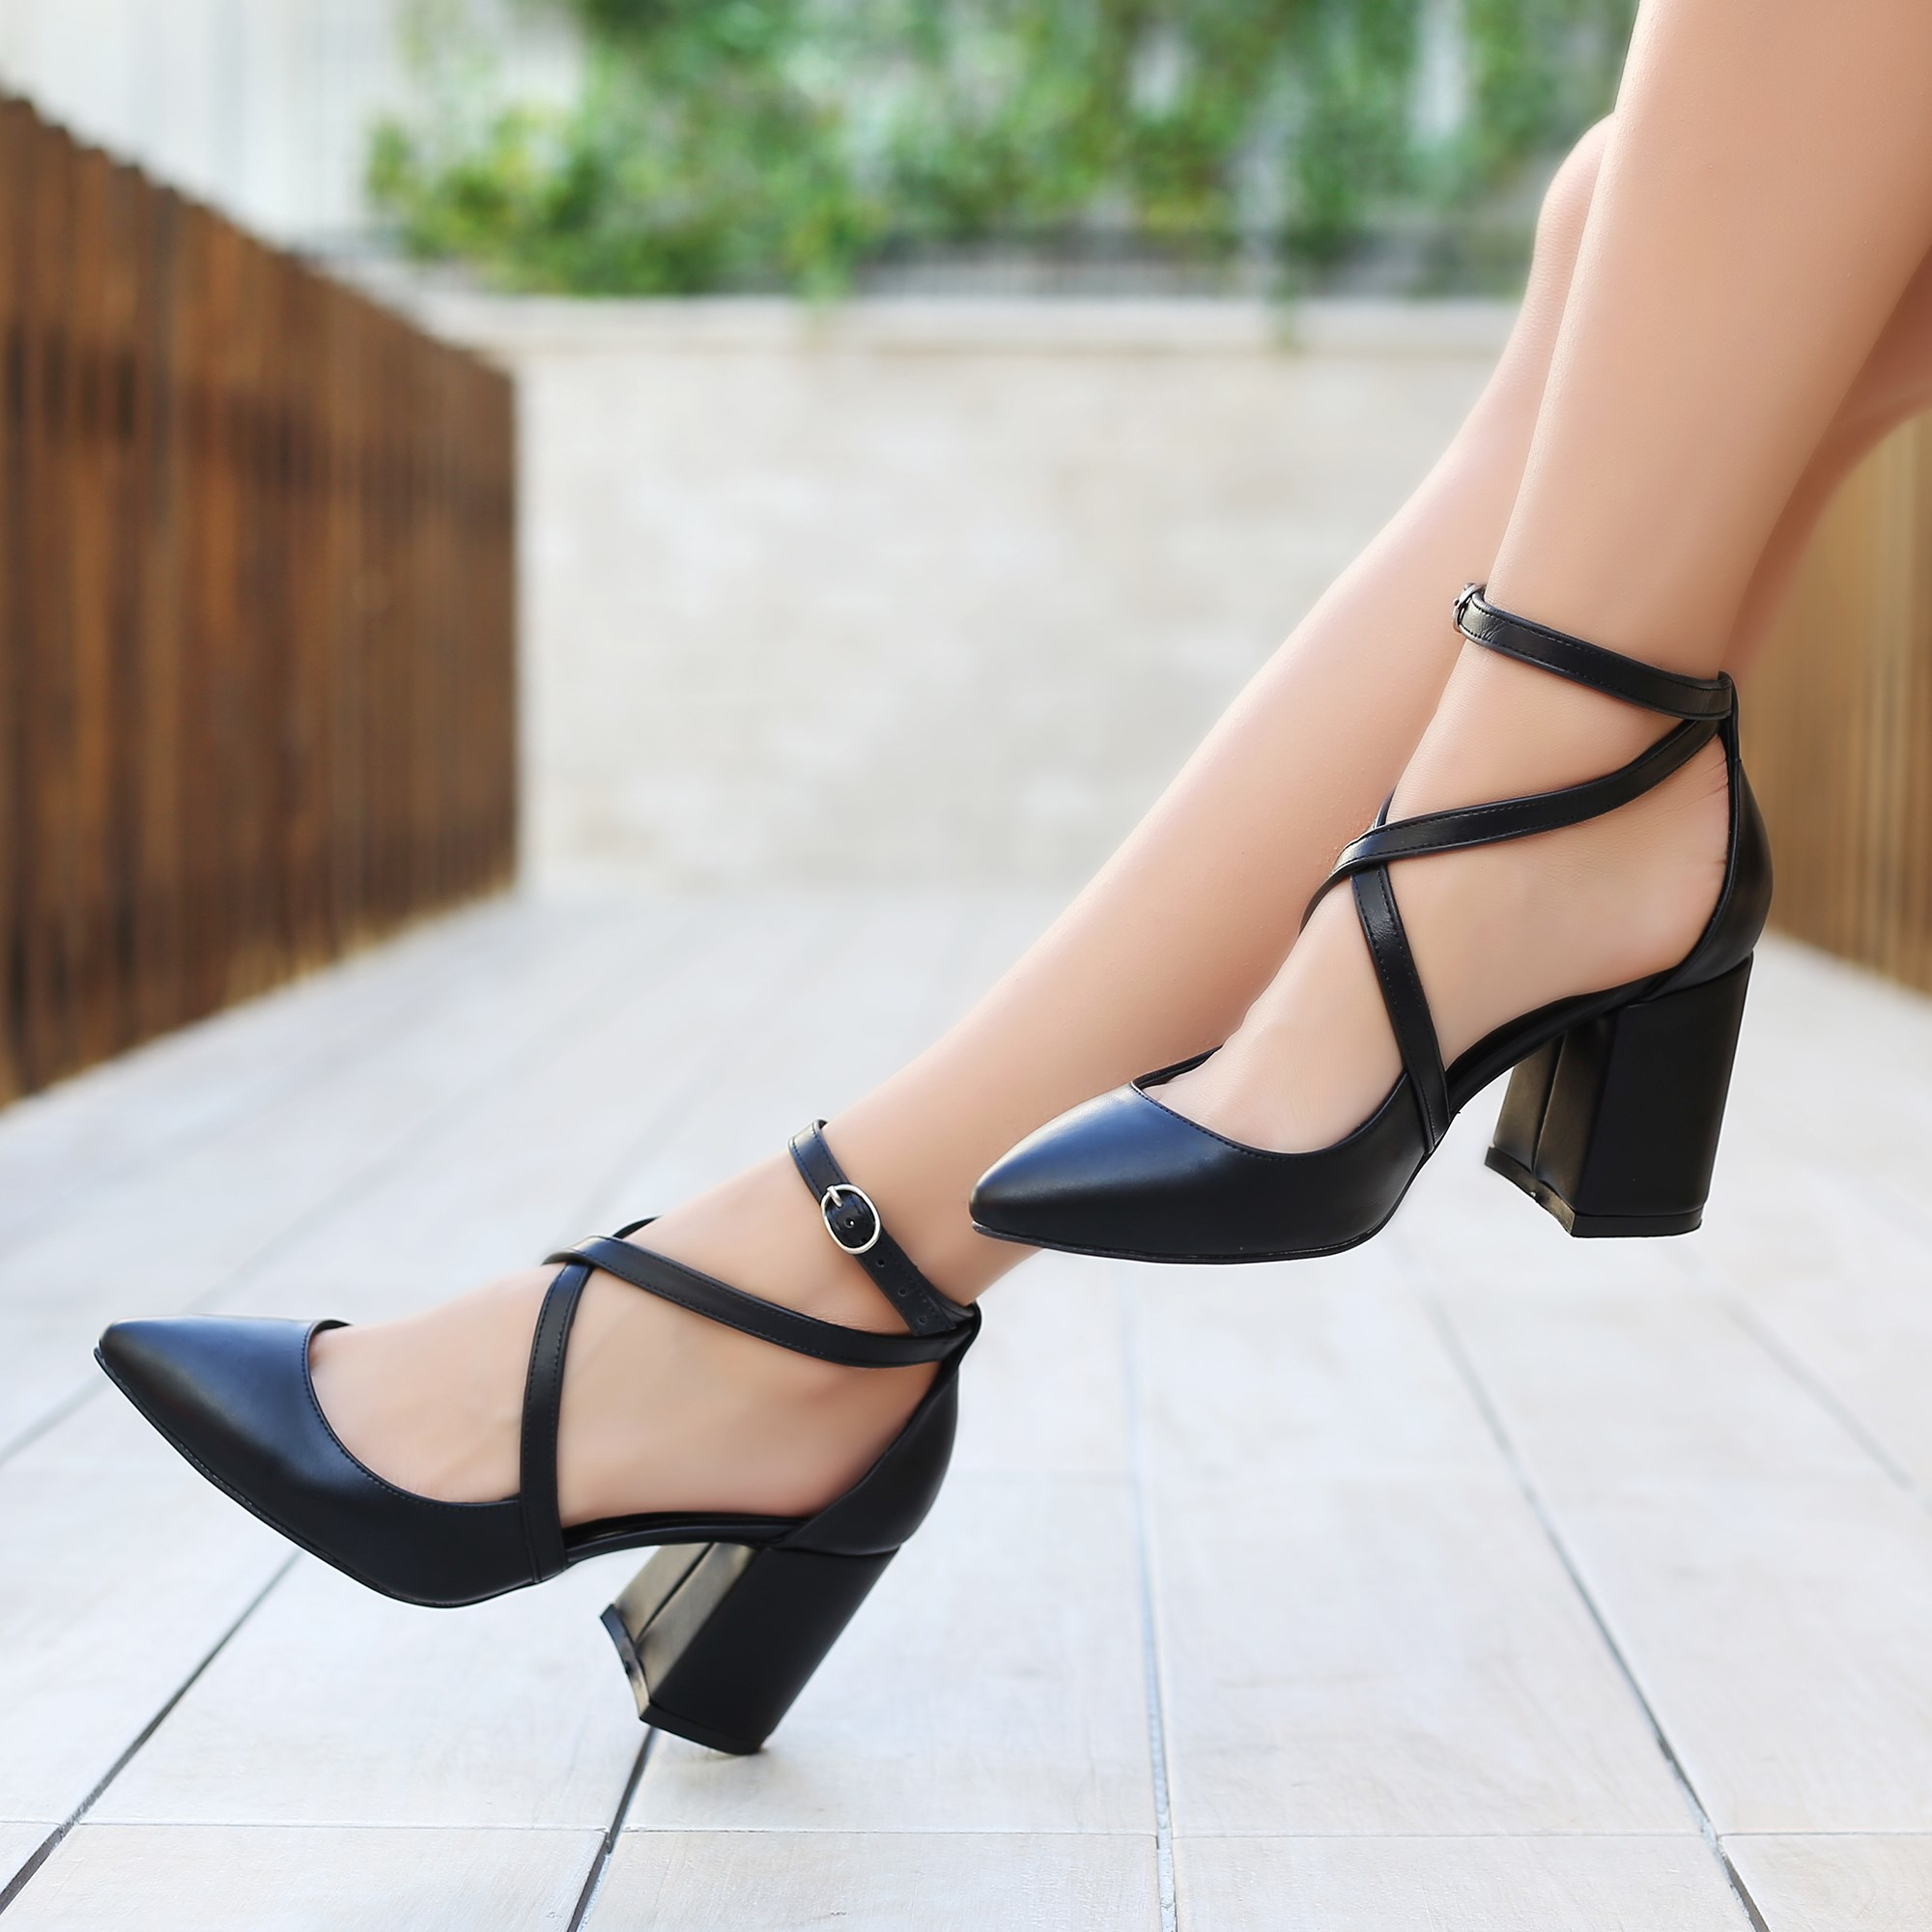 Katalin Black Short Heel Flats